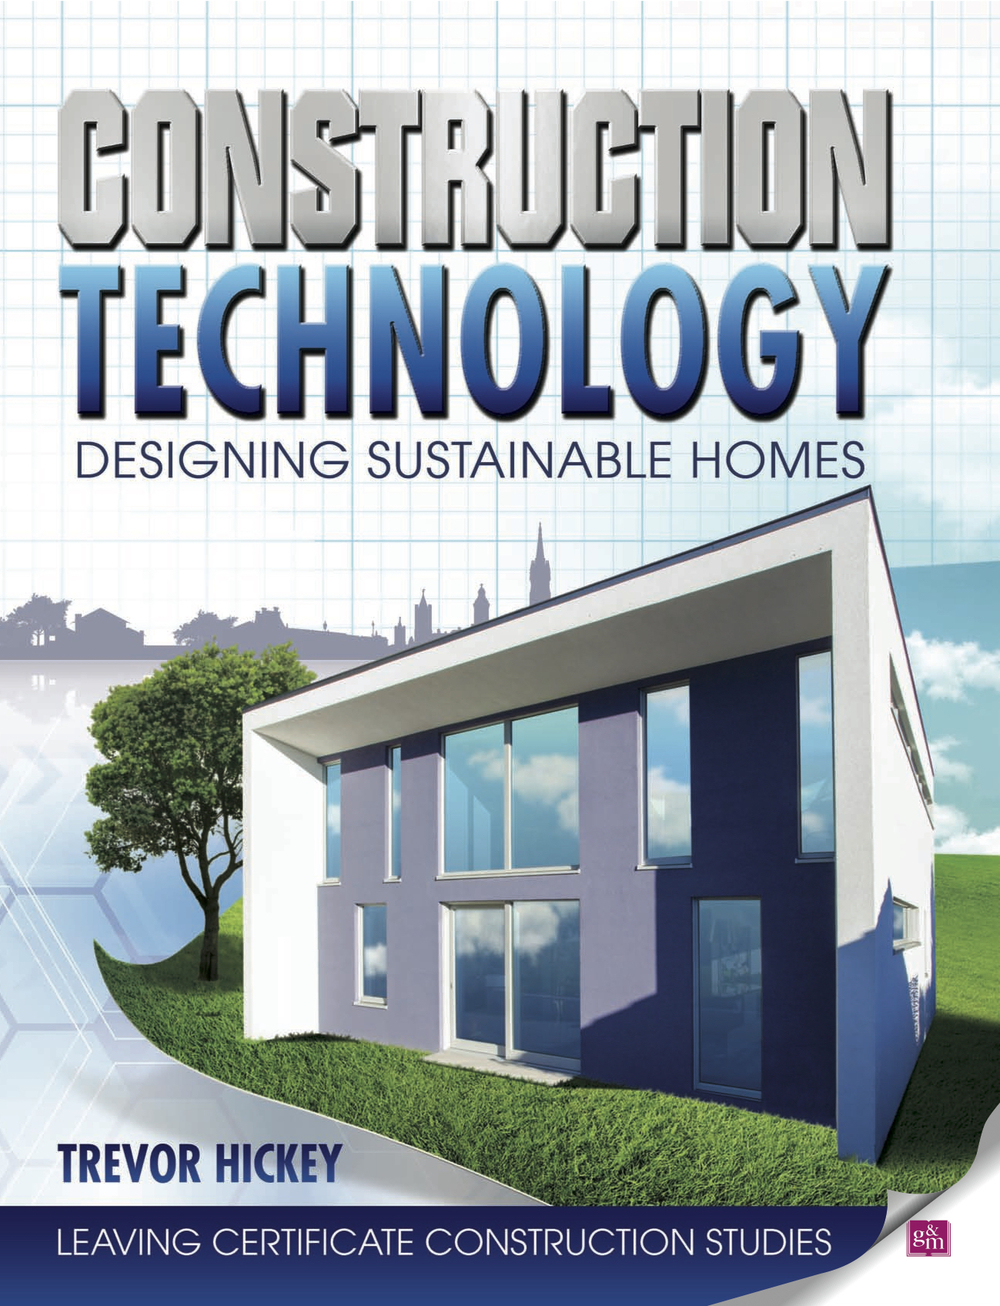 Hickey, T. ( 2014 ) Construction Technology: Designing Sustainable Homes, Dublin: Gill & Macmillan.